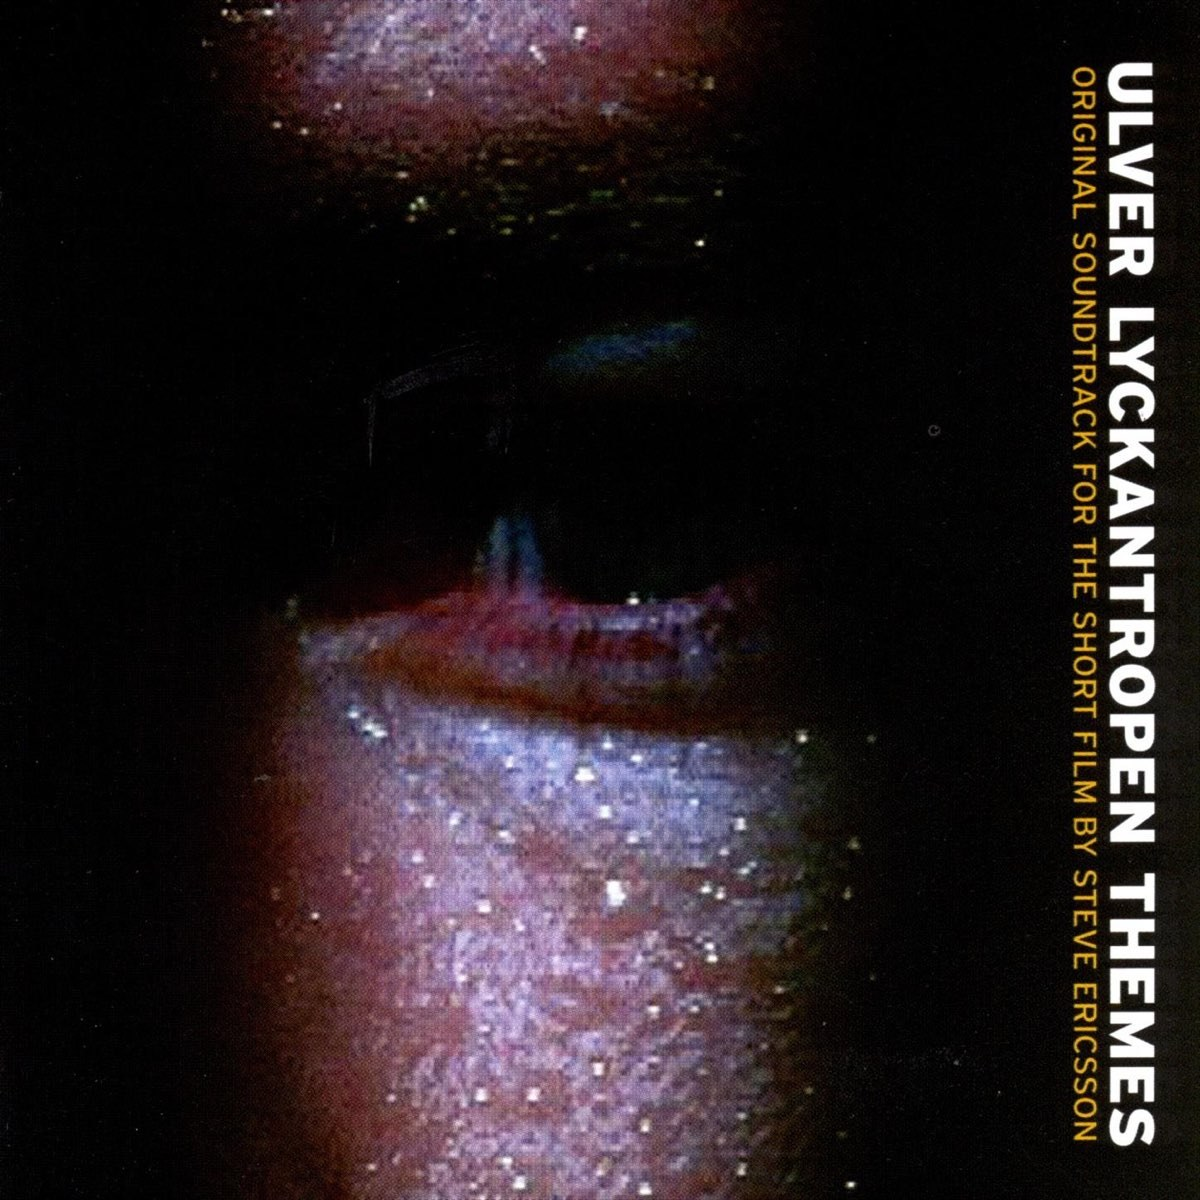 Review for Ulver - Lyckantropen Themes